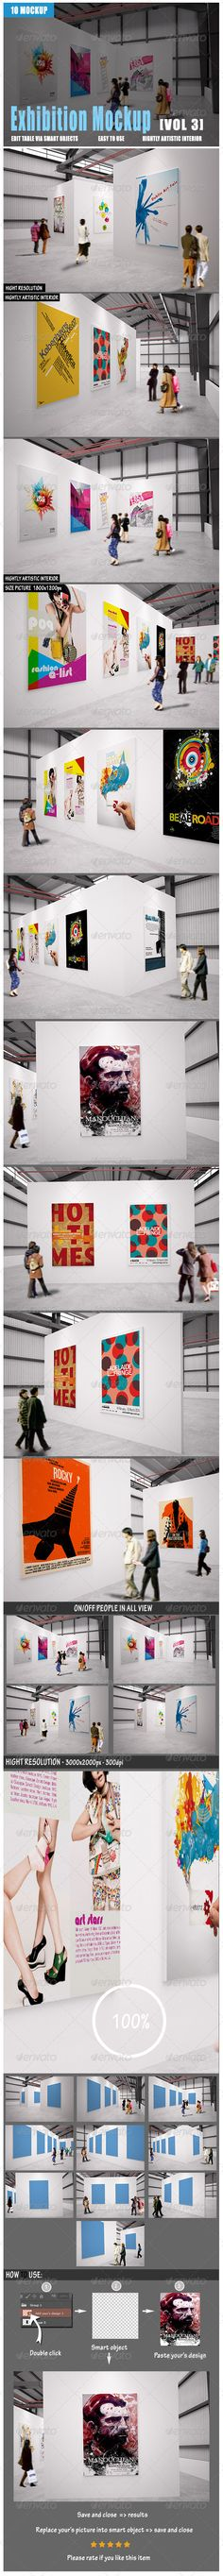 Exhibition Mockup | Download: http://graphicriver.net/item/exhibition-mockup-vol3/8526704?ref=ksioks